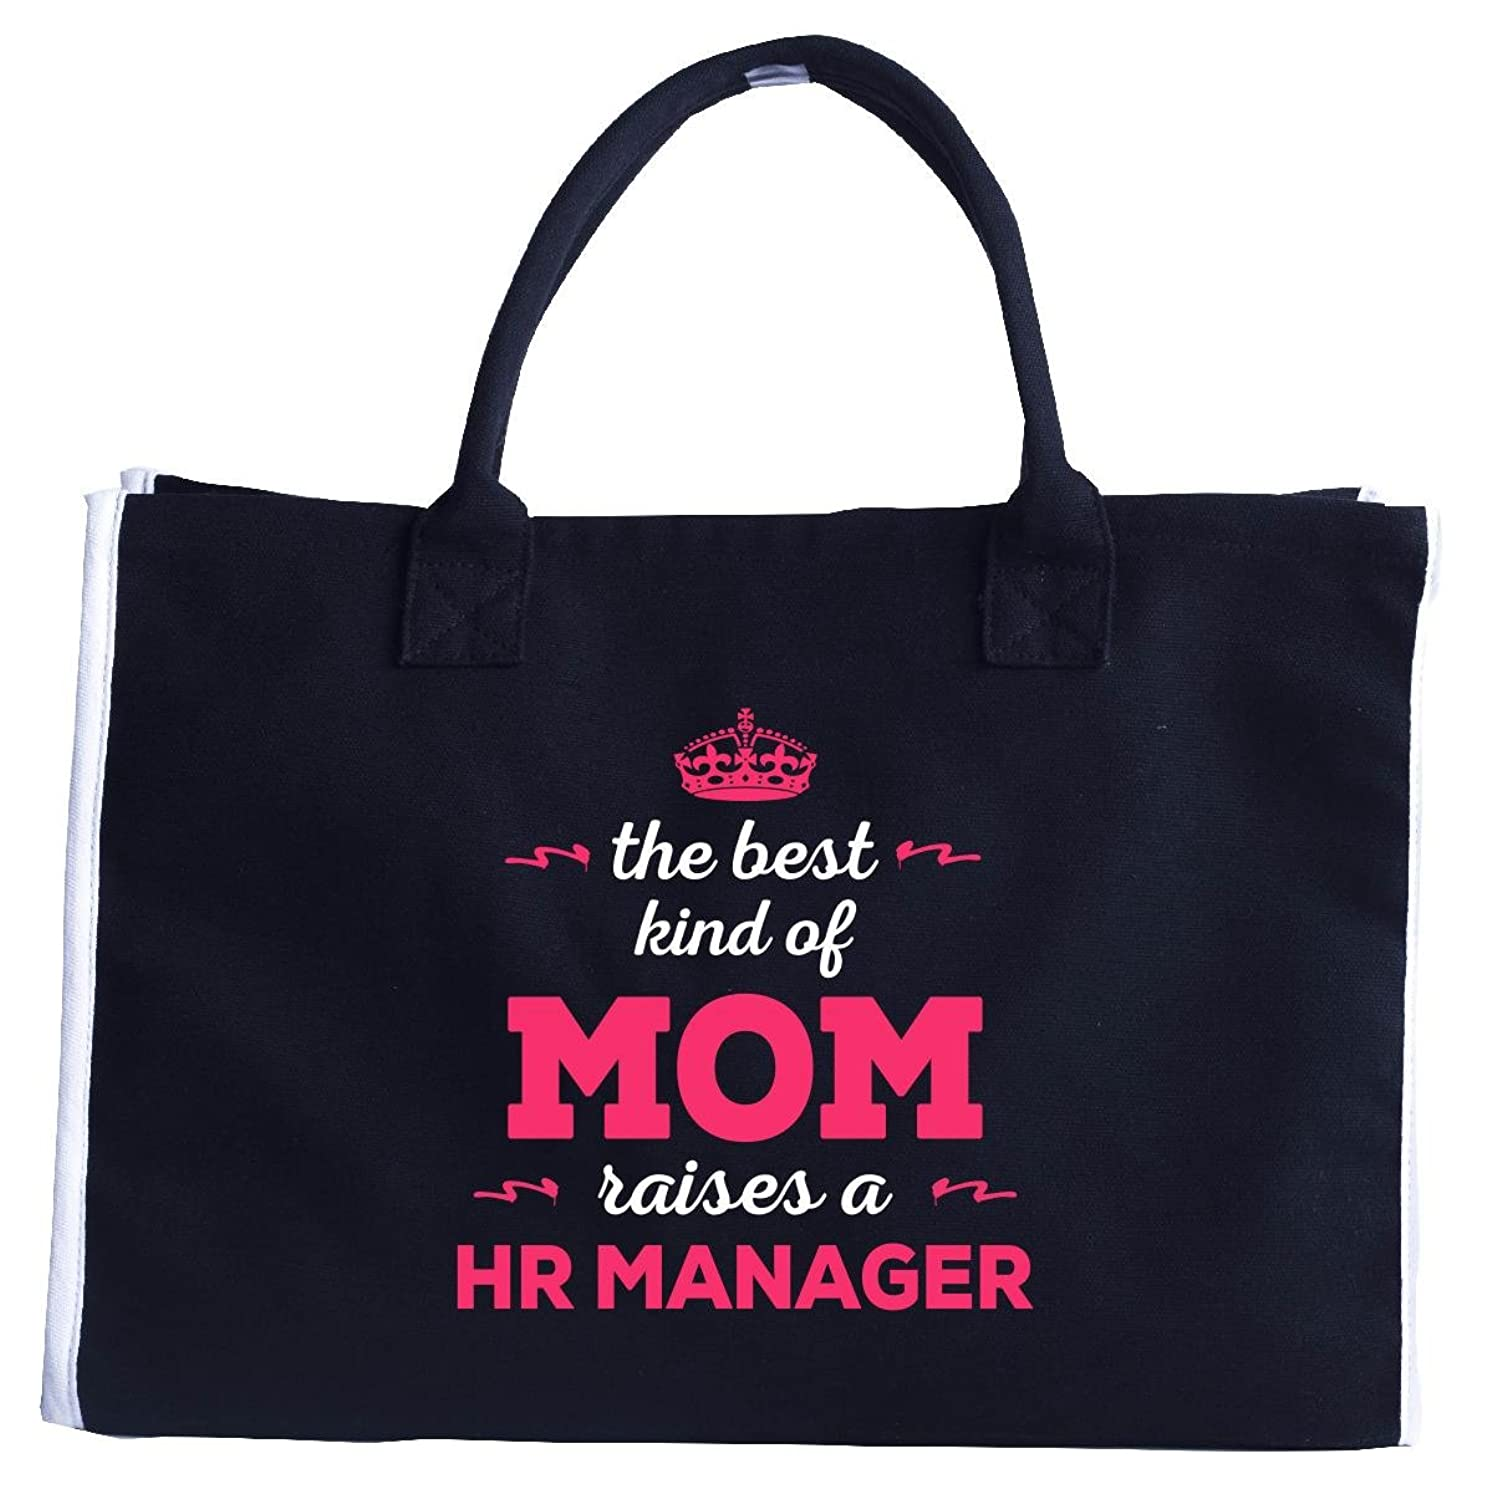 The Best Kind Of Mom Raises A Hr Manager. Gift For Mom - Fashion Tote Bag